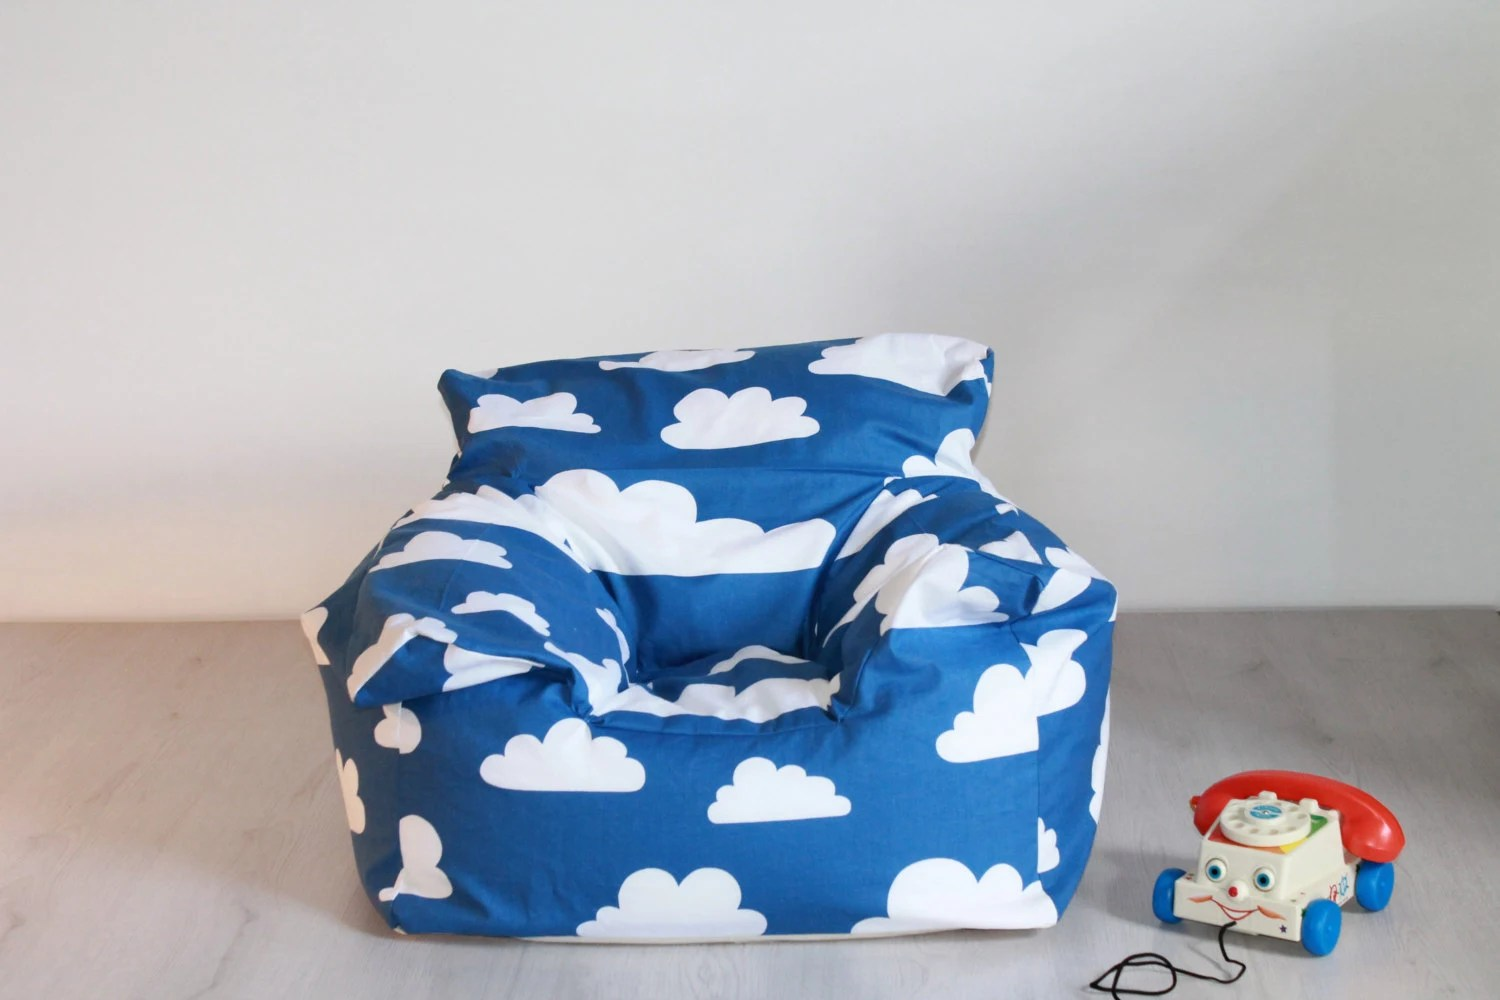 bean bag chairs for boys reclining office with footrest filled swedish blue clouds funky chair and